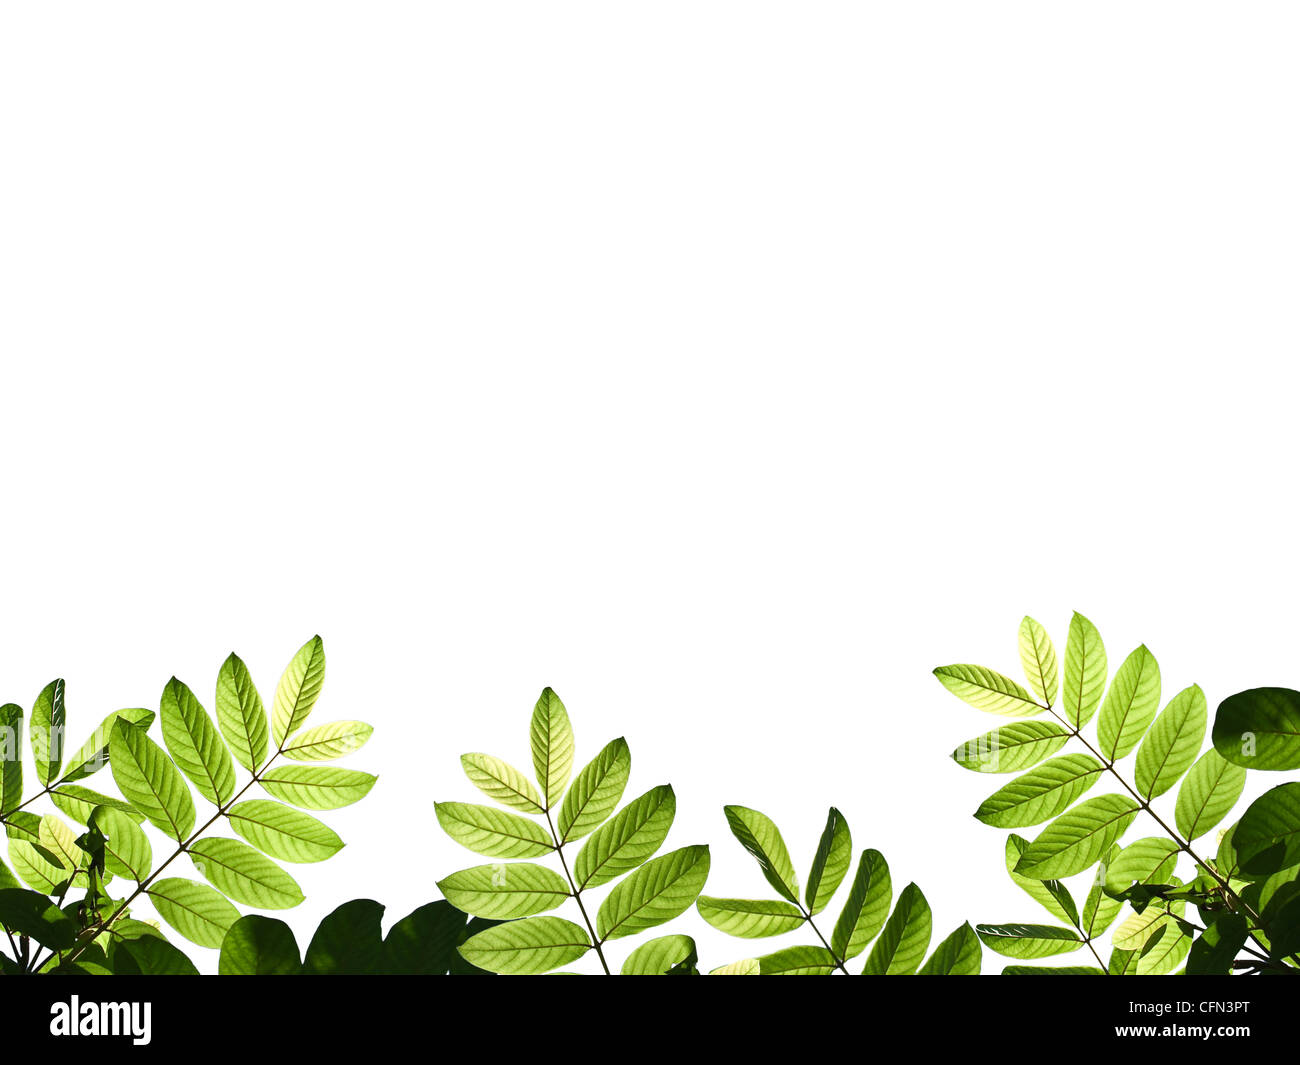 Green leafs isolate on white background - Stock Image